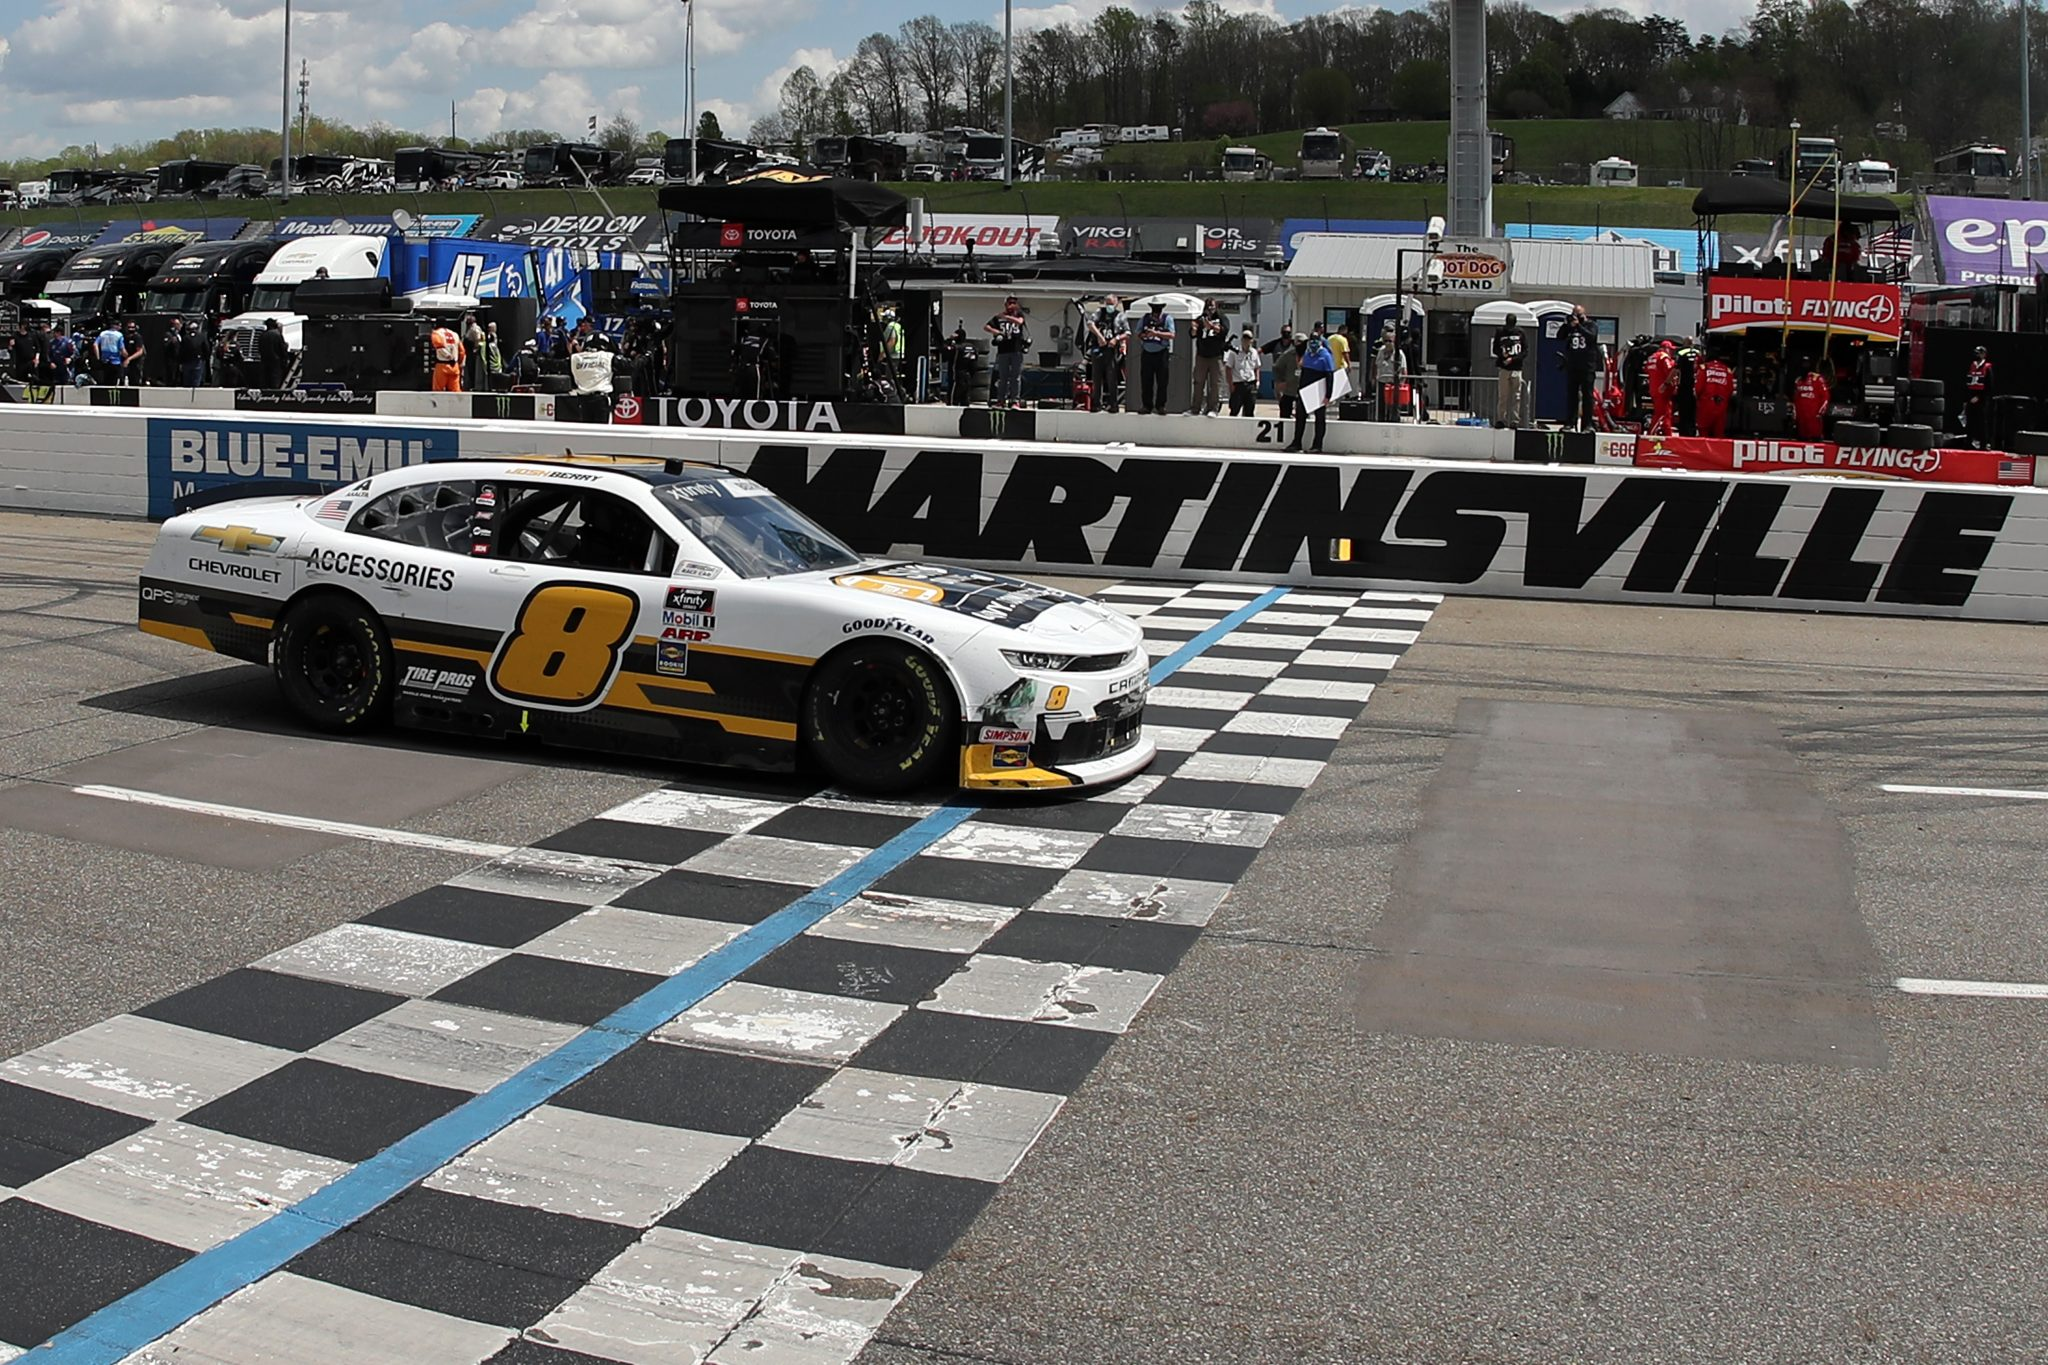 MARTINSVILLE, VIRGINIA - APRIL 11: Josh Berry, driver of the #8 Chevrolet Accessories Chevrolet, crosses the finish line to win the NASCAR Xfinity Series Cook Out 250 at Martinsville Speedway on April 11, 2021 in Martinsville, Virginia. (Photo by James Gilbert/Getty Images) | Getty Images